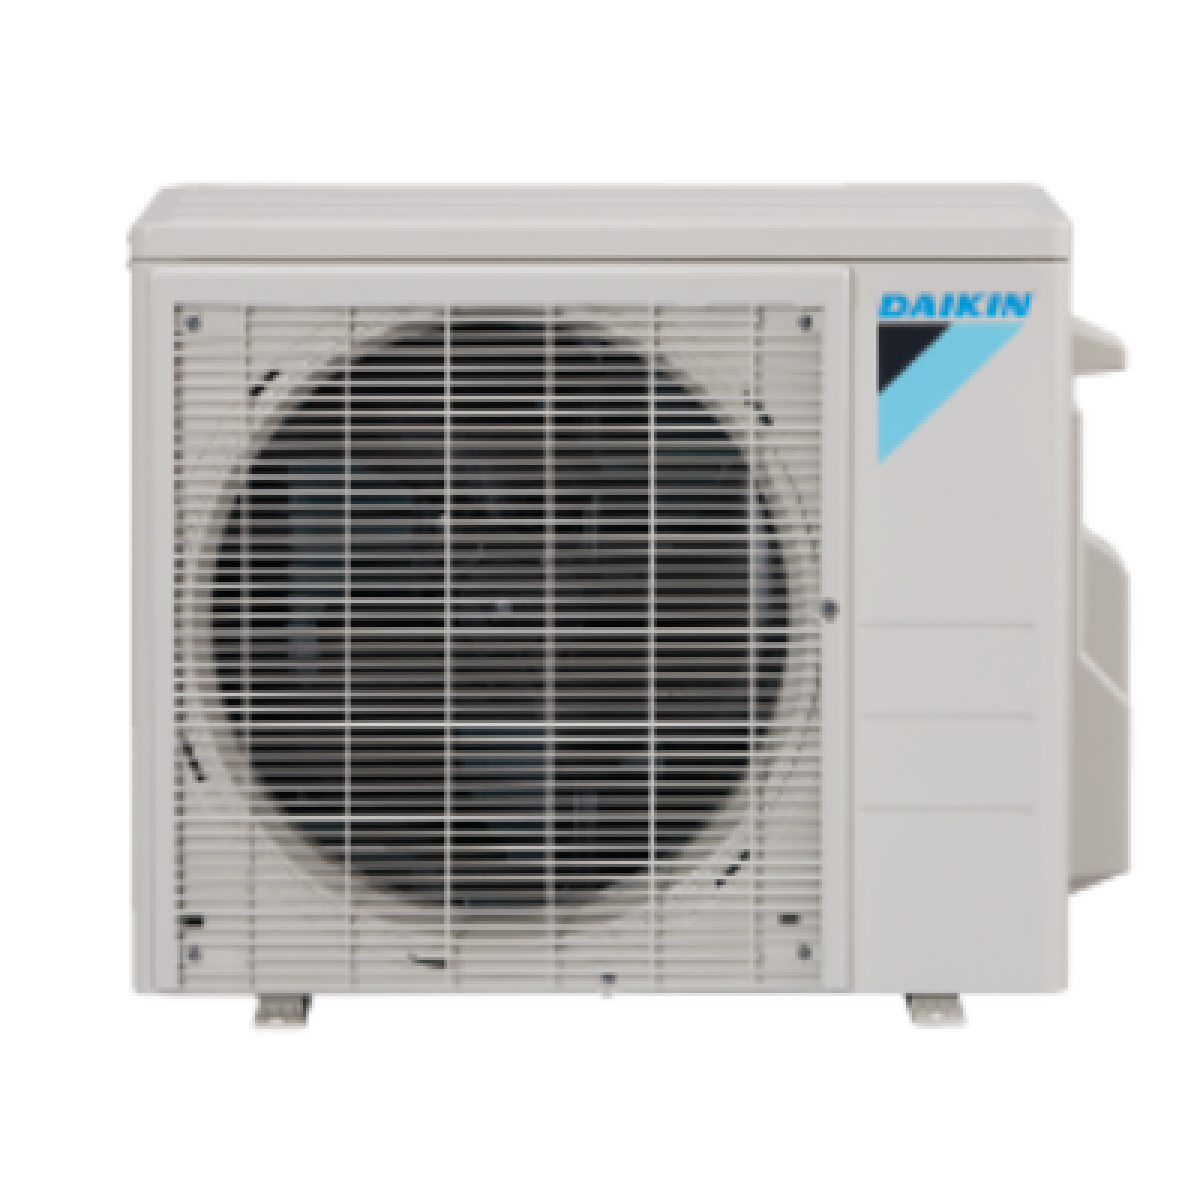 #1E82AD Daikin 2 Zone 18K BTU Heat Pump With Two (2) 9K BTU  Best 2113 Condenser For Ac Unit photos with 1200x1200 px on helpvideos.info - Air Conditioners, Air Coolers and more